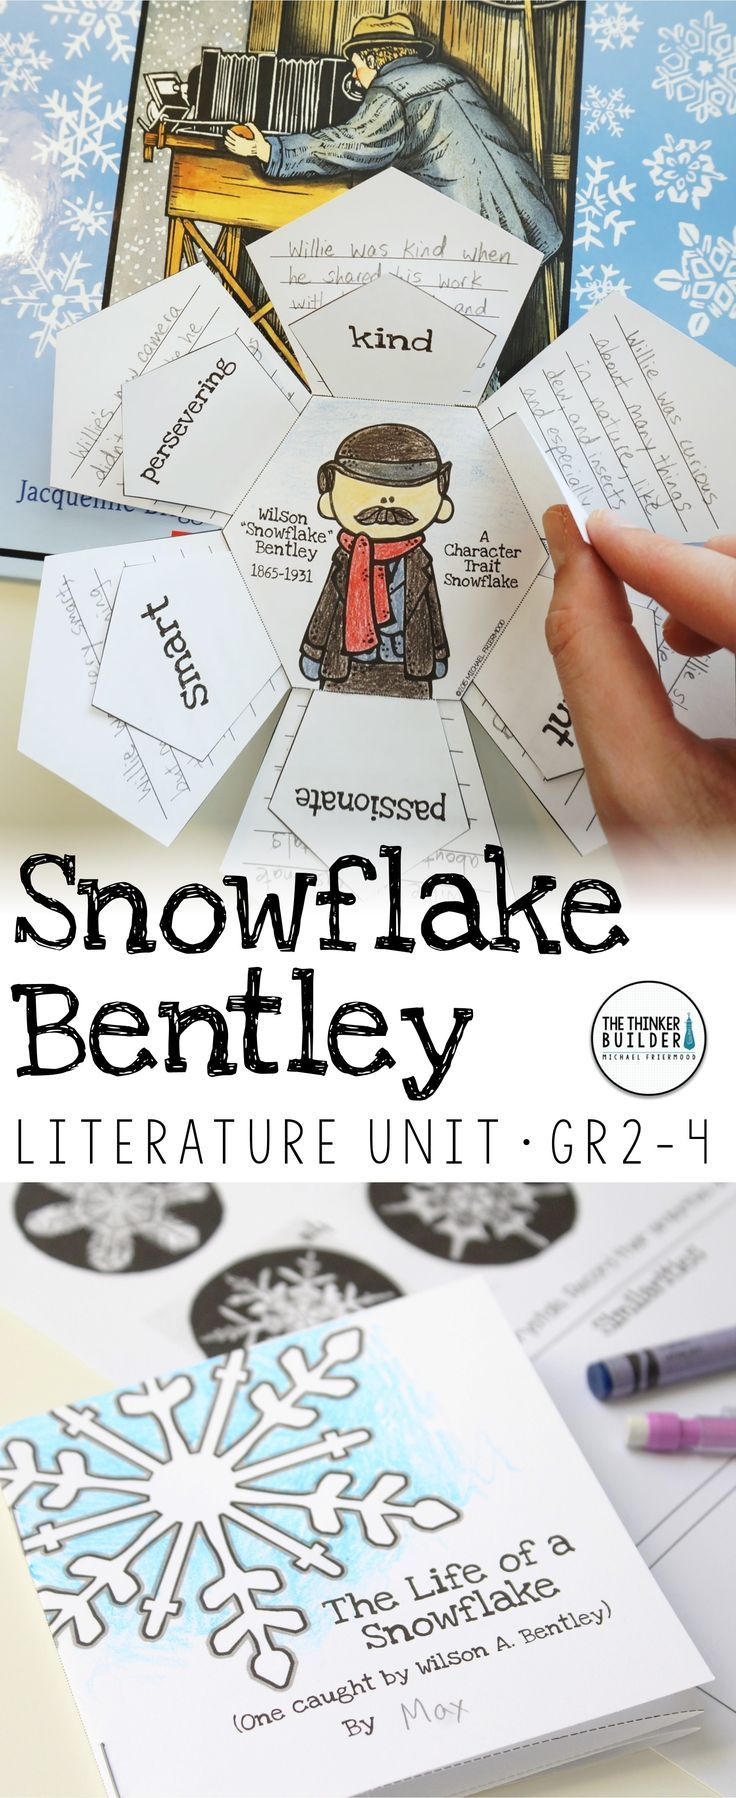 48 best literature units images on pinterest classroom ideas an engaging literature unit for the picture book snowflake bentley by jacqueline briggs martin fandeluxe Choice Image